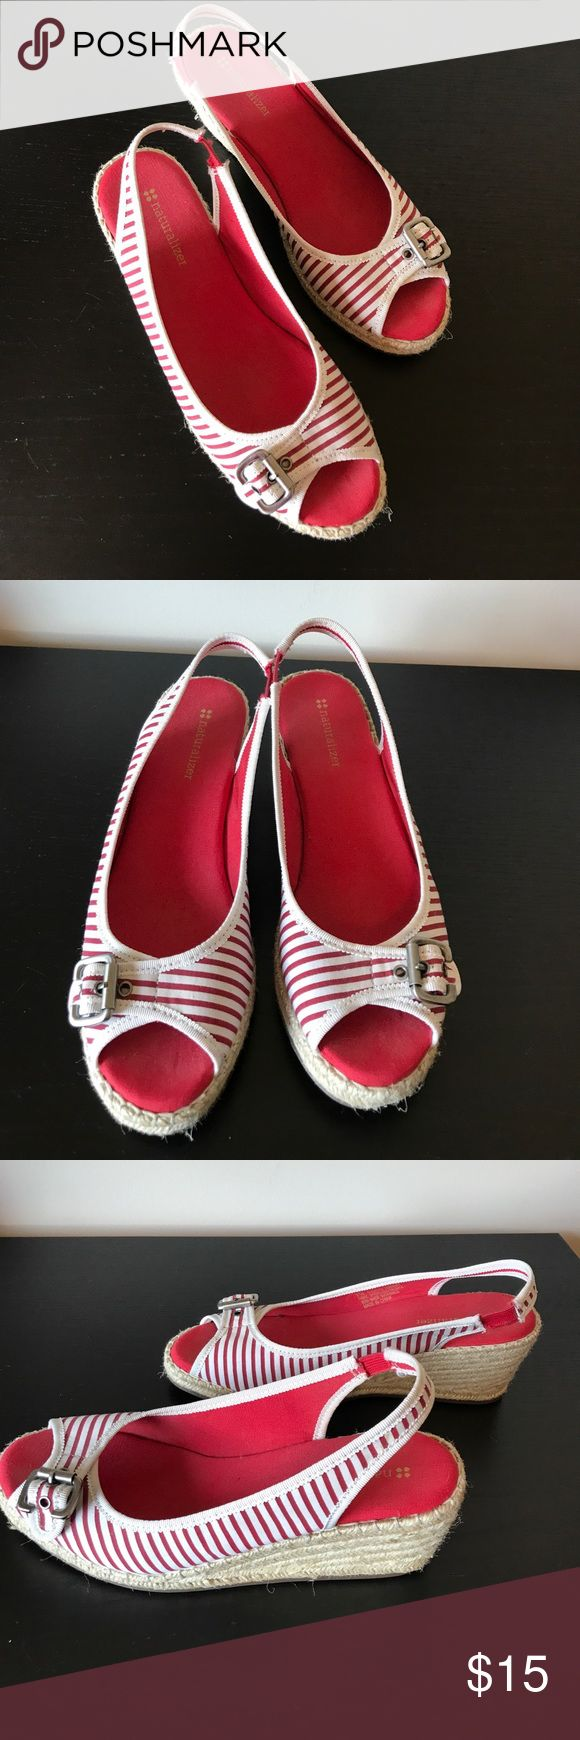 Naturalizer Red & White Espadrilles Wedges Naturalizer Red & White Espadrilles Wedges. 🔹Elastic on sling backs shows a little wear bit still in good shape and stretchy. See pics  🔹Buckles are adjustable ✅Offers Welcome w/Offer Button 🚫Trade 🚫PP 💰30%OffBundle 📦Ships1Day. Naturalizer Shoes Espadrilles